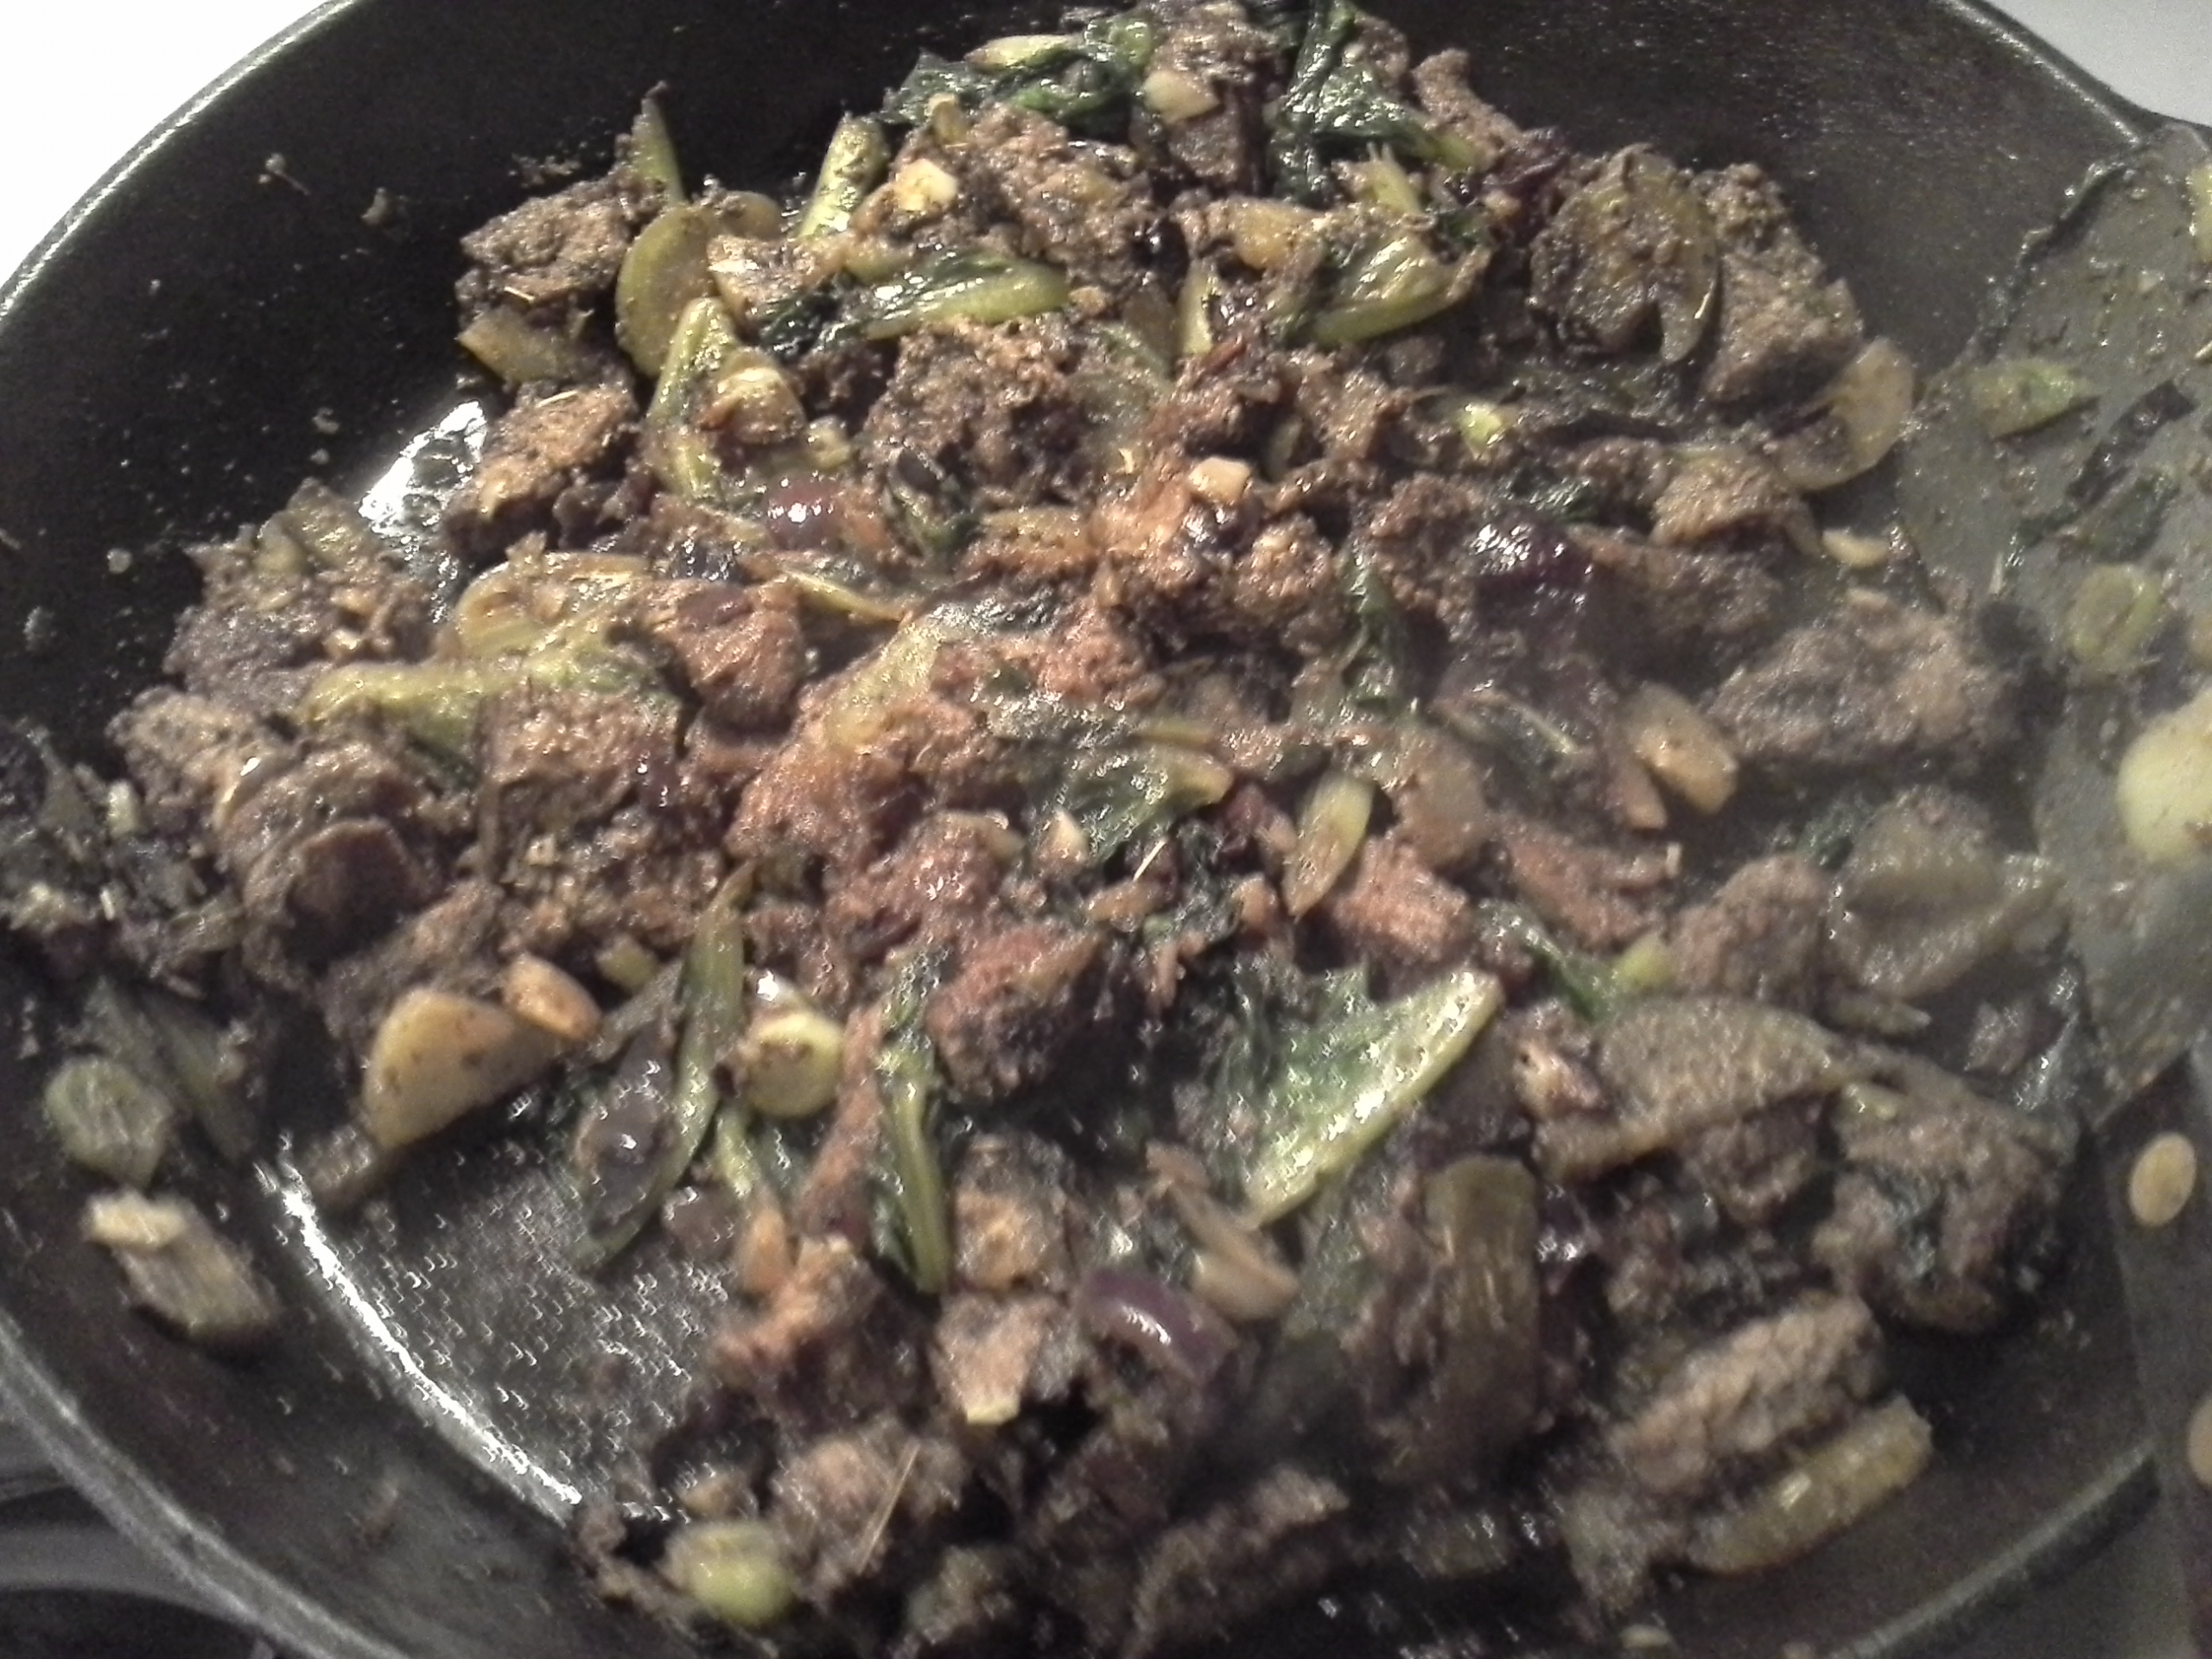 Dinner: 8:55 p.m. | Beef, 3 large leaves of mystery CSA greens, 1/2 daikon radish?, 1/2 red onion, 4 cloves garlic, 2 Tbsp. coconut oil, herbs & spices